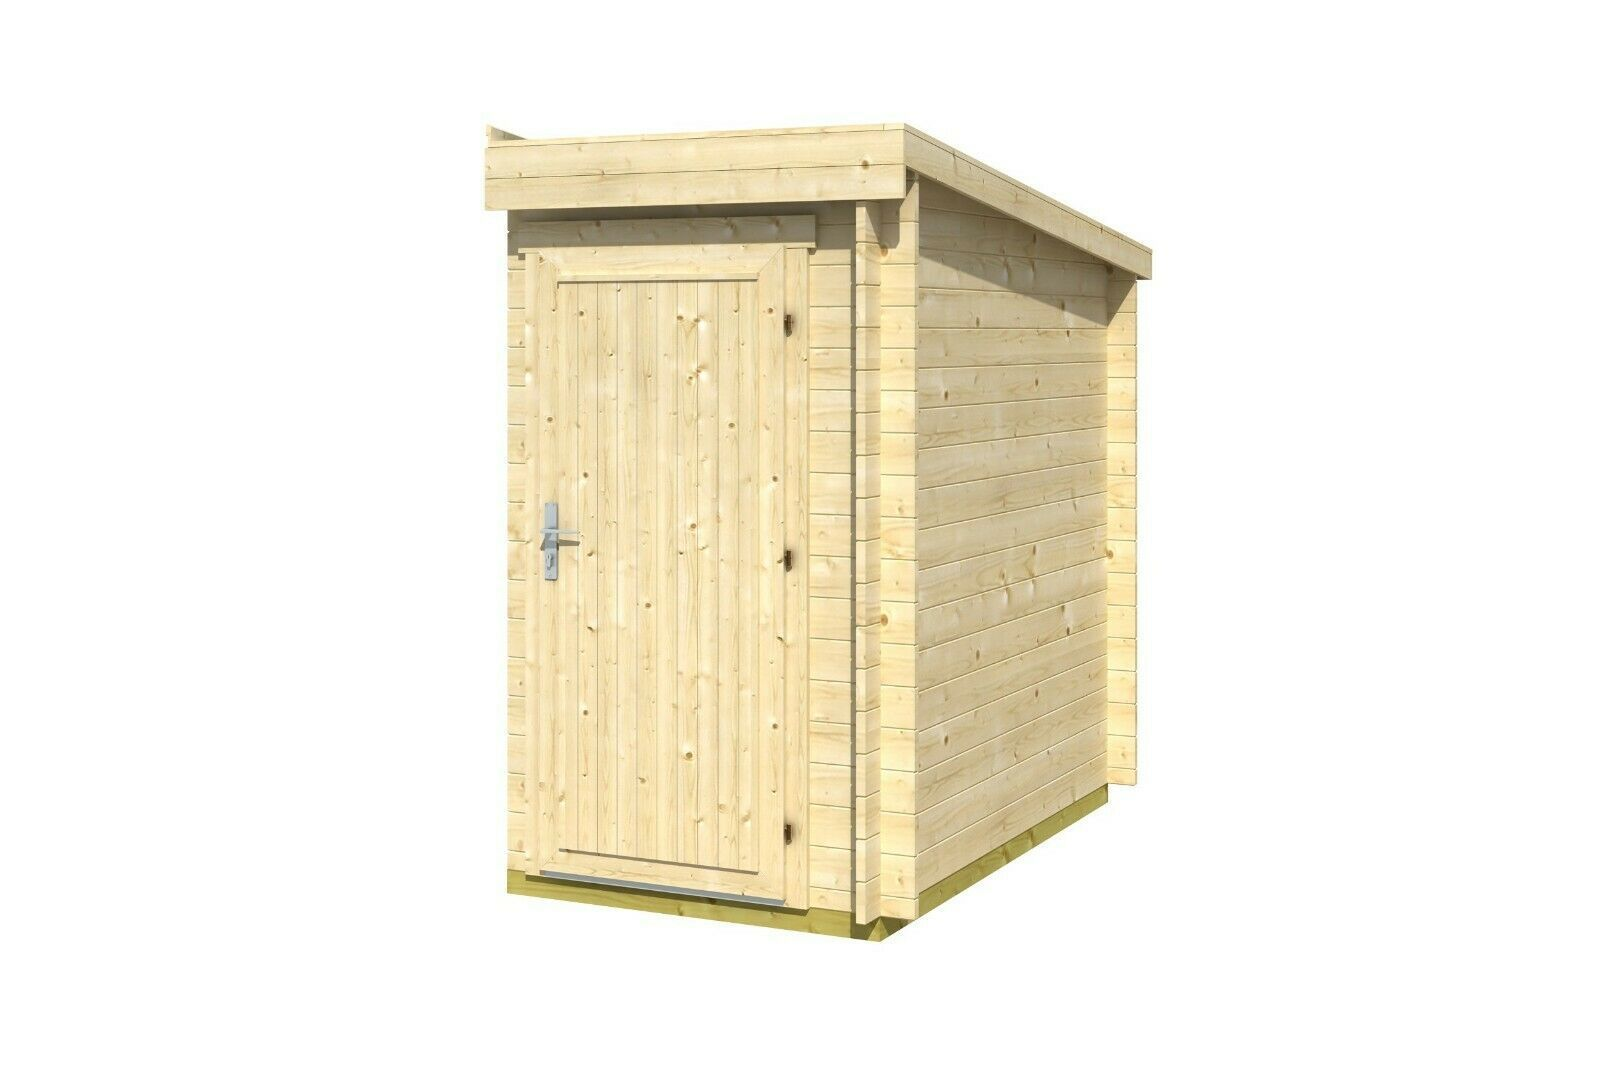 Anbauschrank Pultdach 200 28mm 120x200 Cm Gerateschrank Barbados Anbauschrank Barbados Gerateschrank Pultdach In 2020 Shiplap Cladding Buy Shed Wooden Sheds